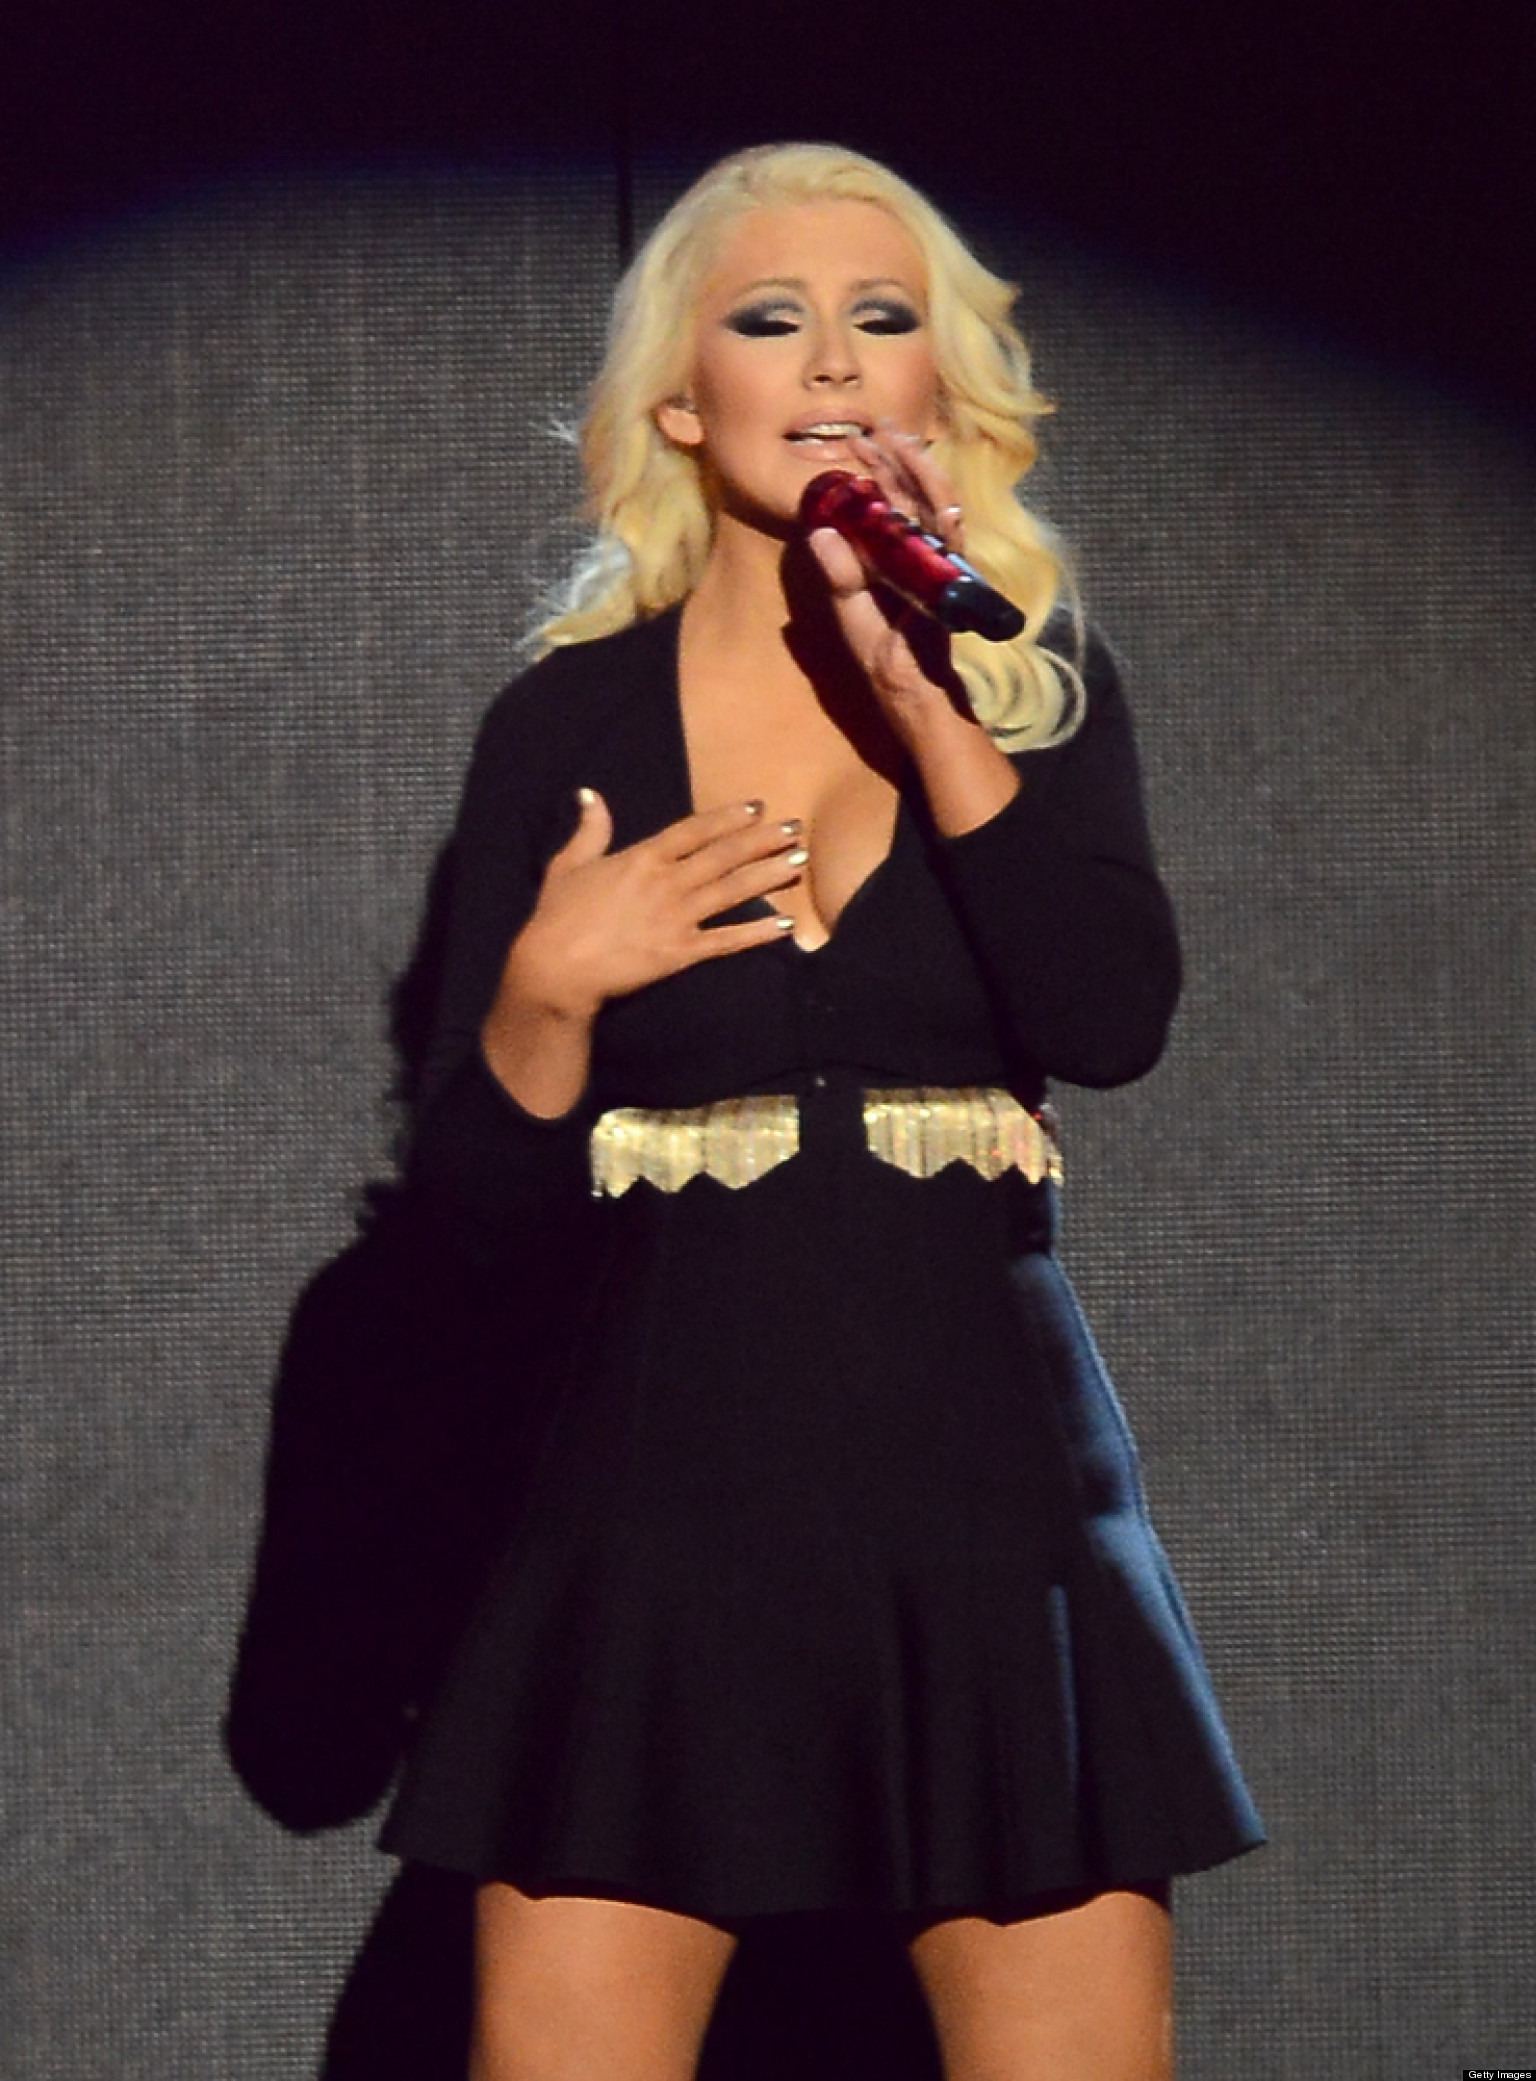 christina aguilera shows off weight loss at billboard